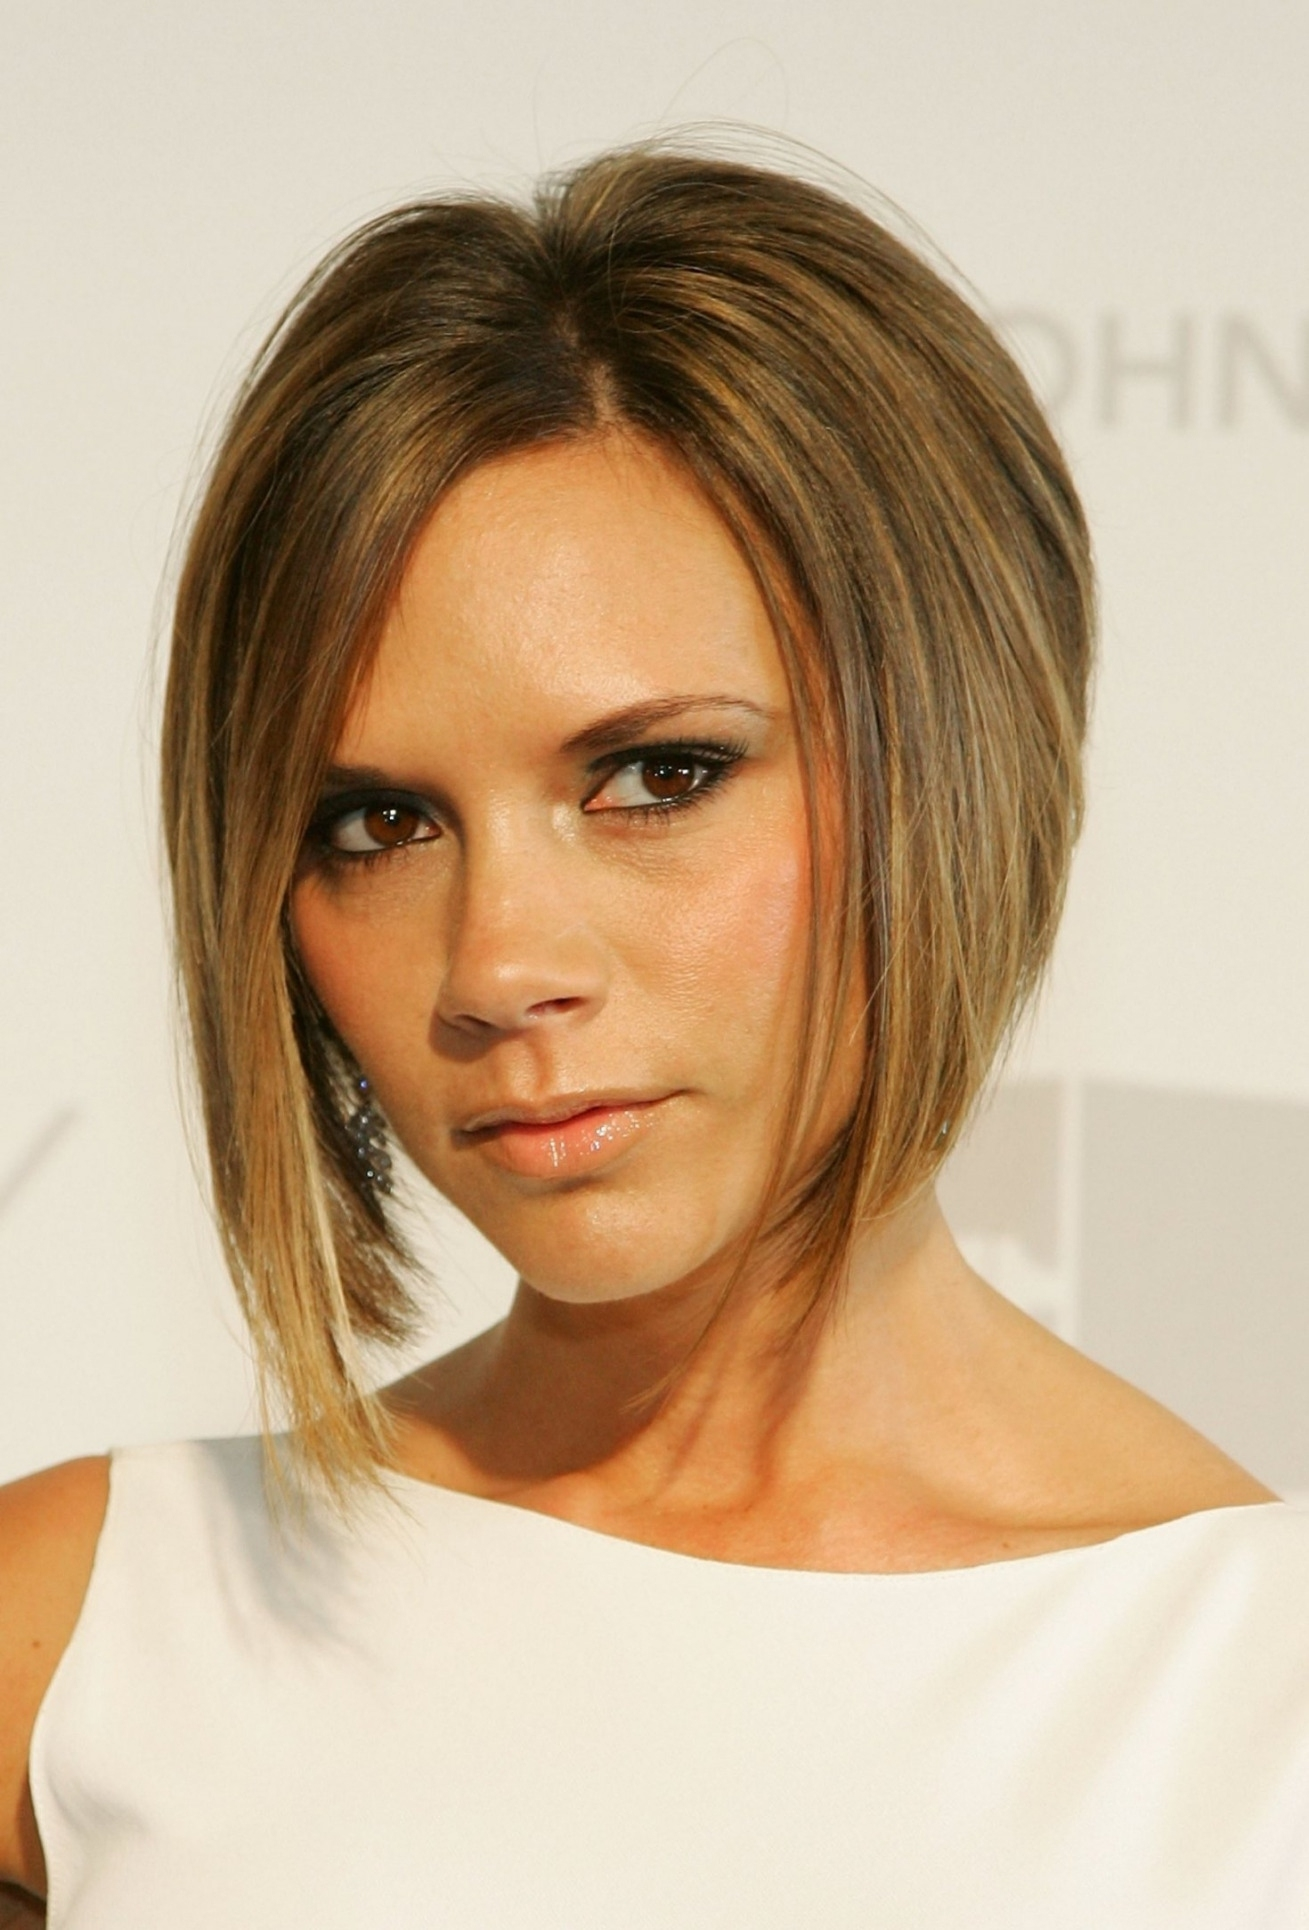 Haircuts Thin Hair Luxury Pinterest Short Hairstyles For Fine Hair pertaining to Hairstyle For Thin Hair Pinterest